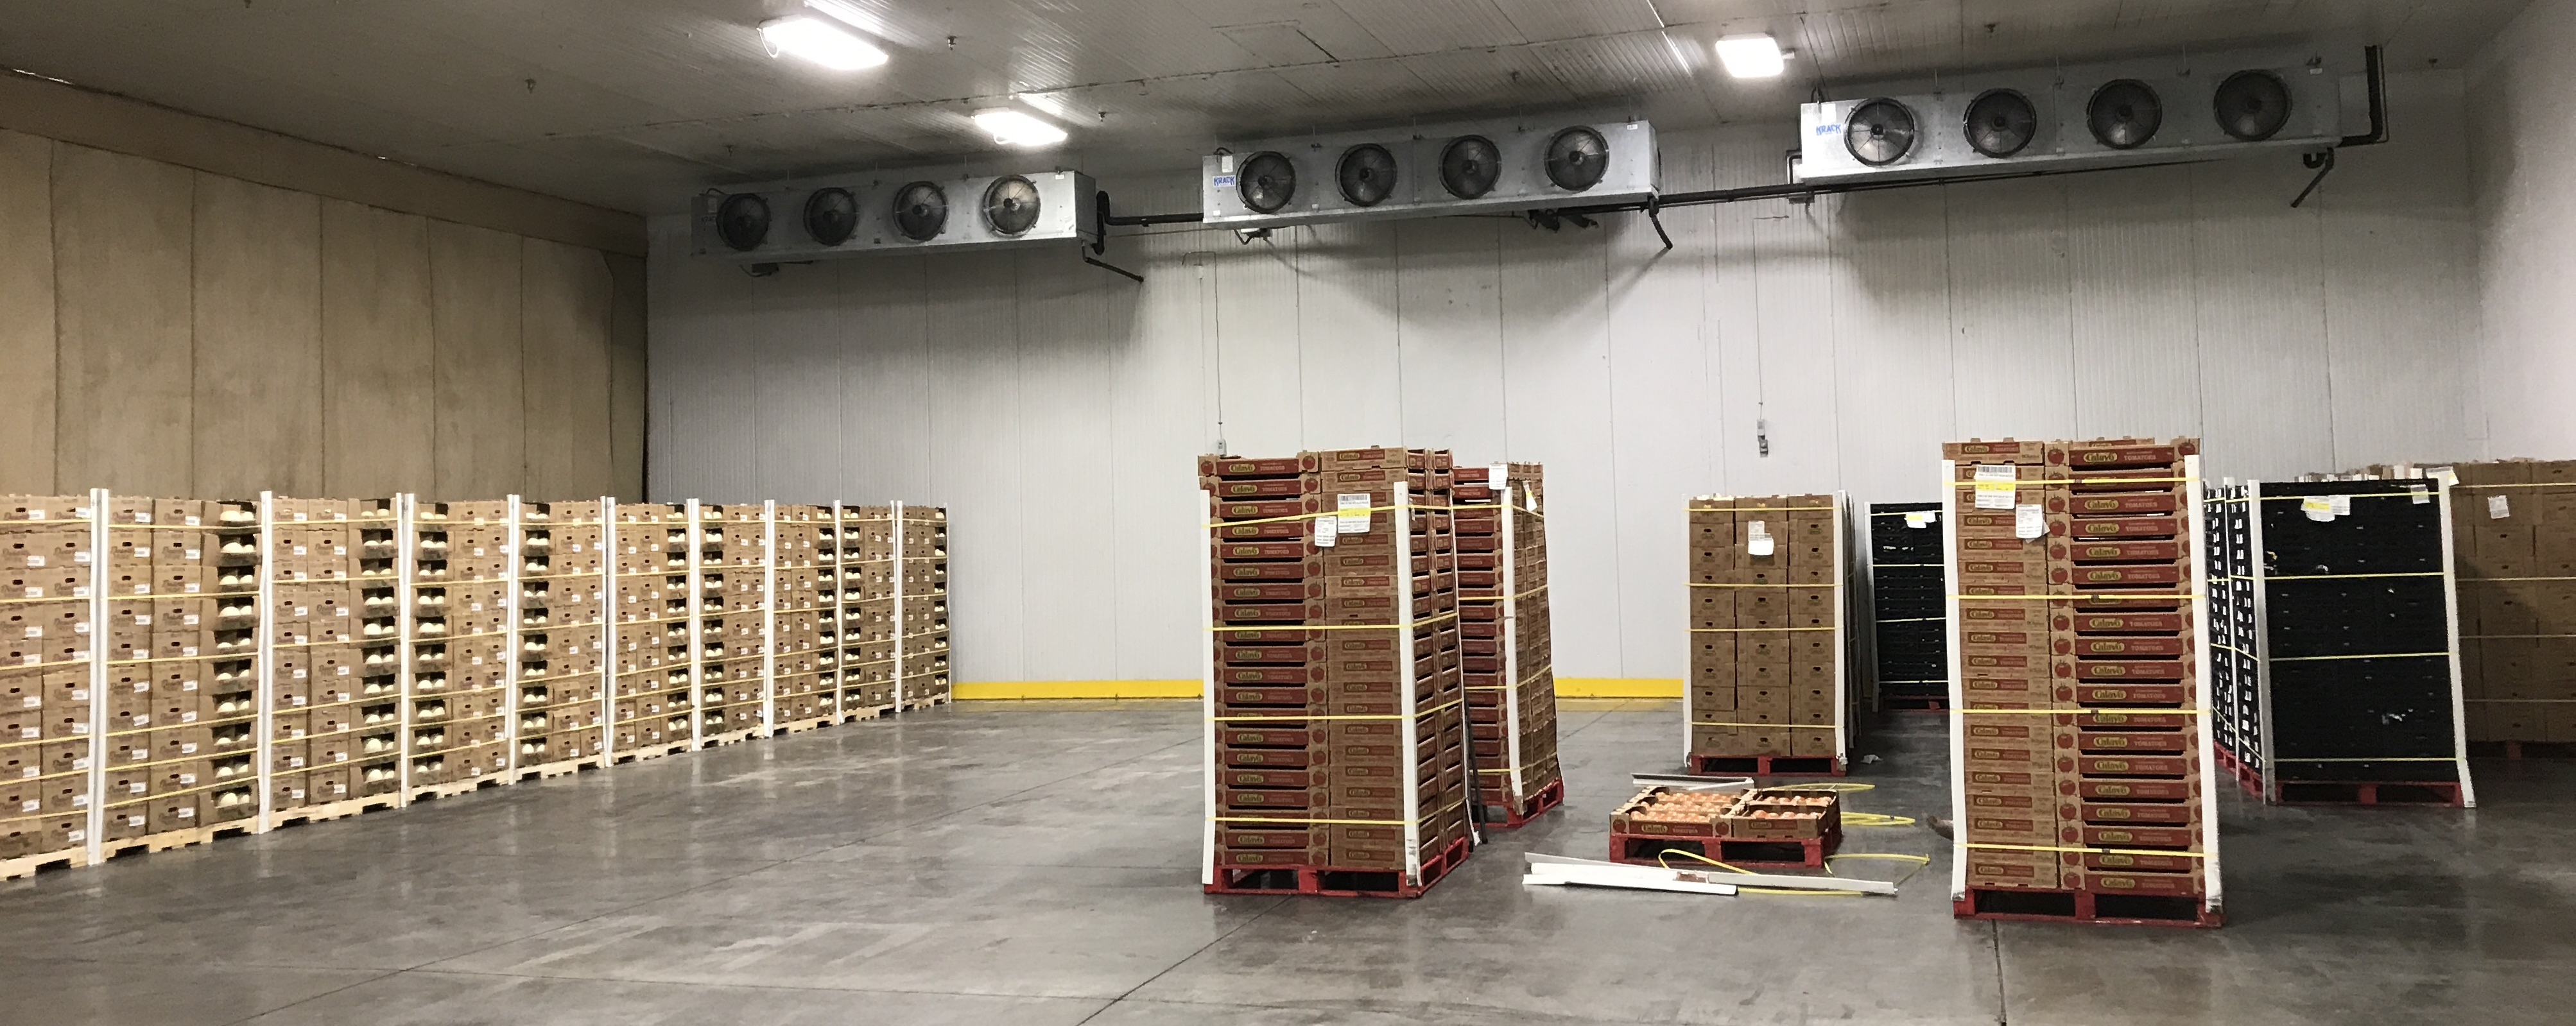 cold storage decrease demand, reduce cold storage energy costs, energy management, increase efficiency cold storage, produce facility increase efficiency